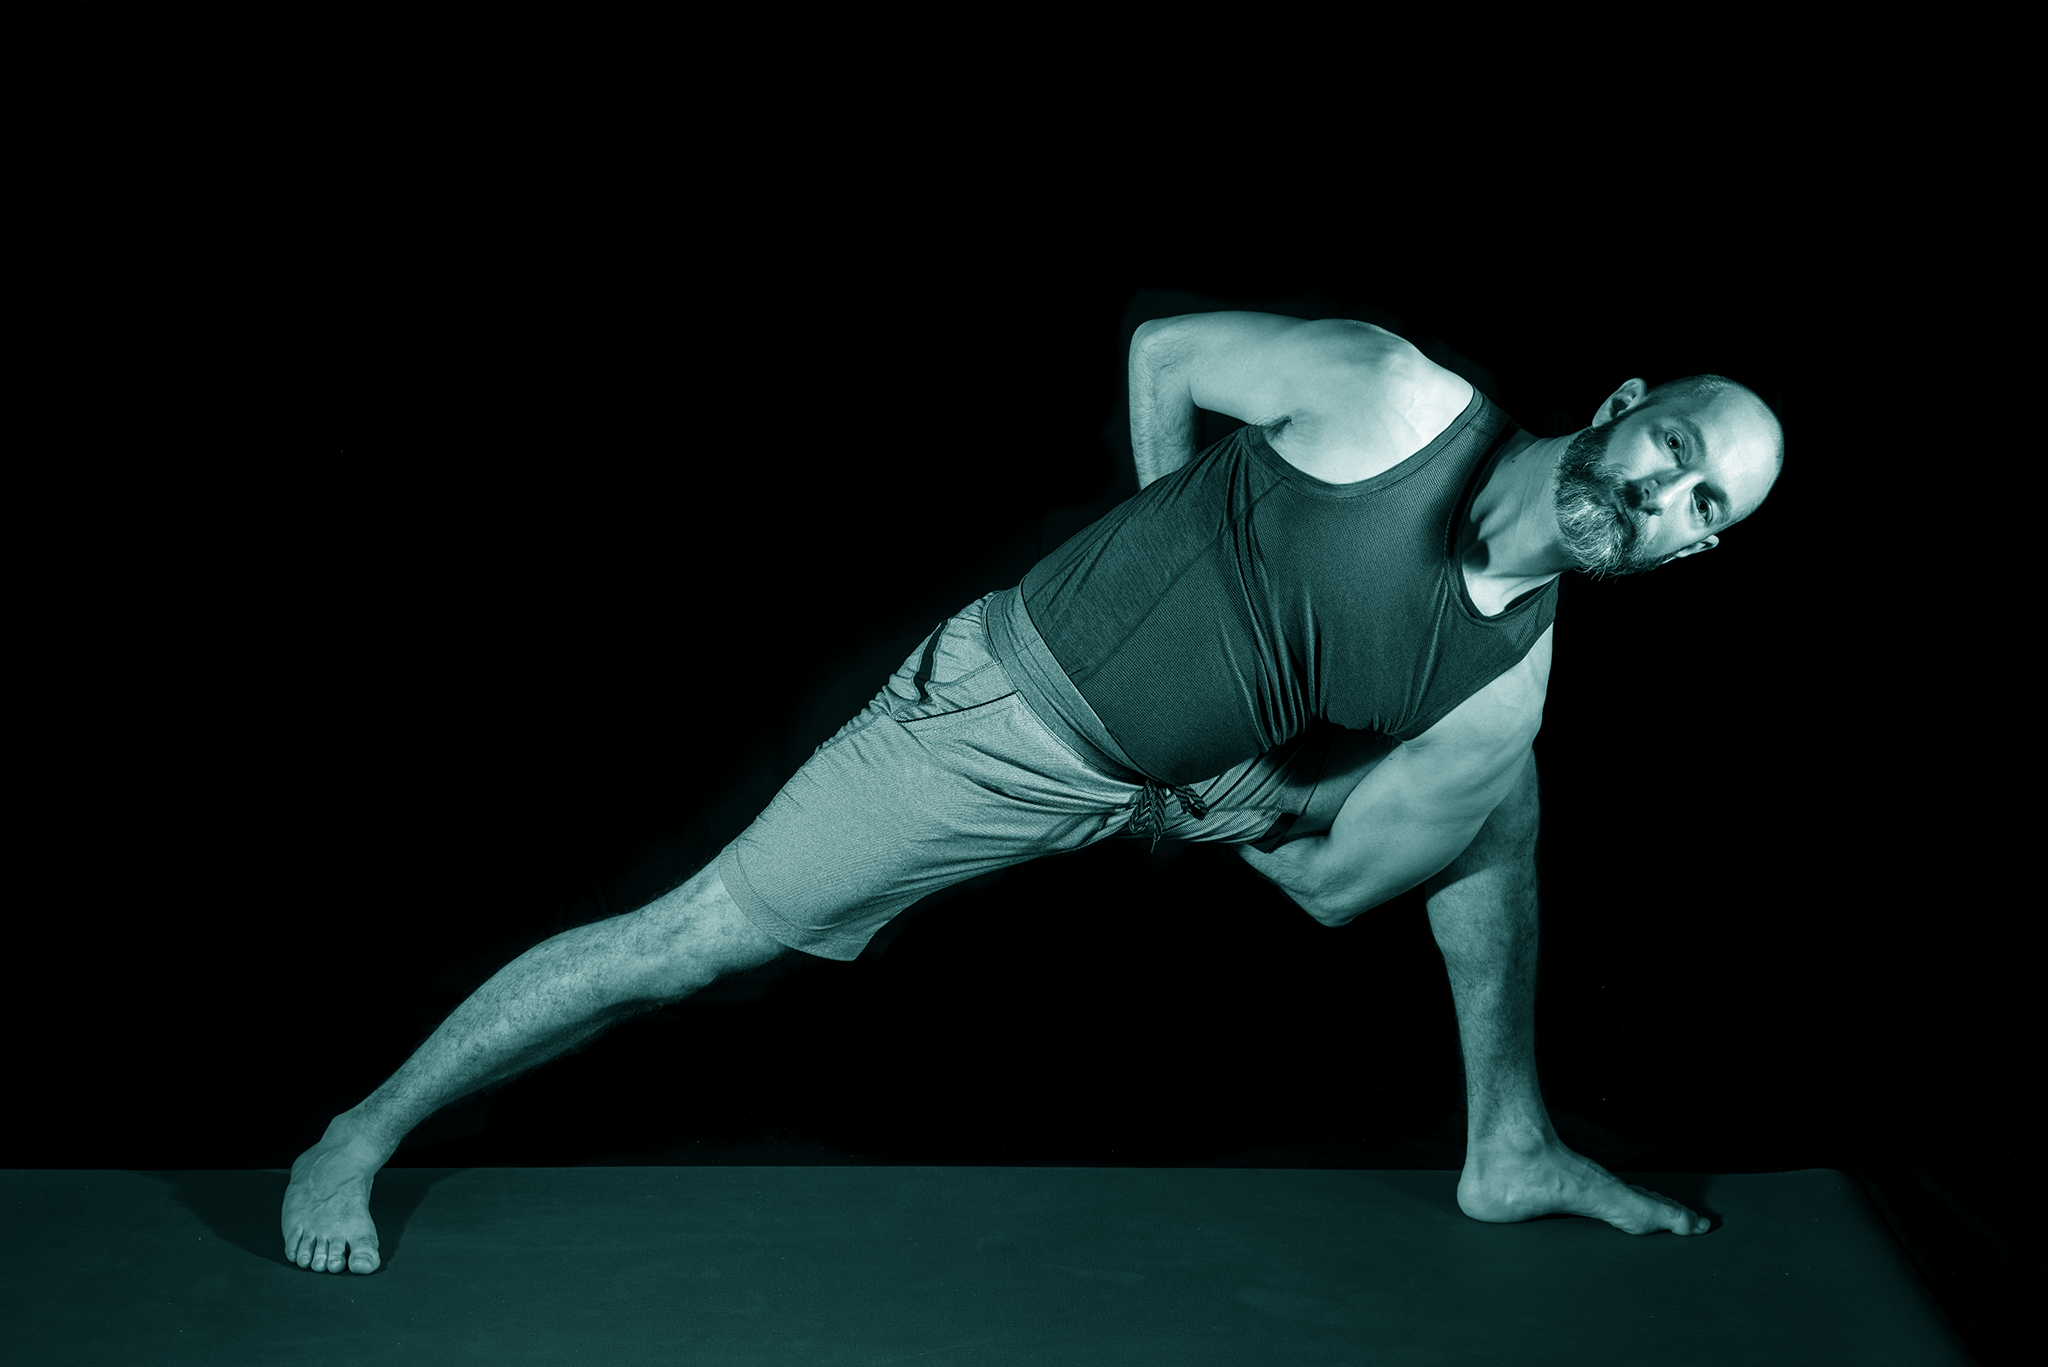 It took me years of slow work to improve my flexibility, it wasn't, and continues not to be, something that comes easy!